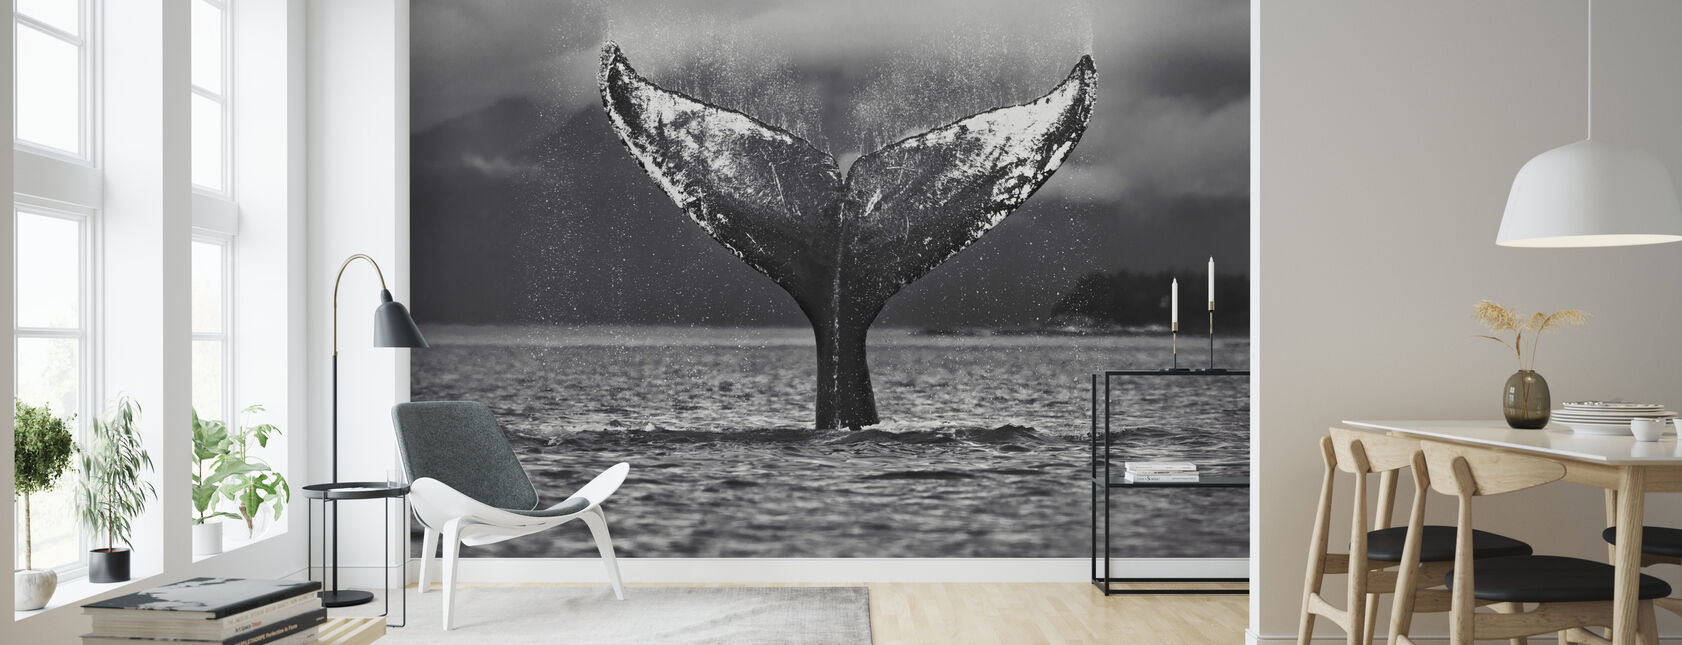 Humpback Whale, Alaska - Wallpaper - Living Room